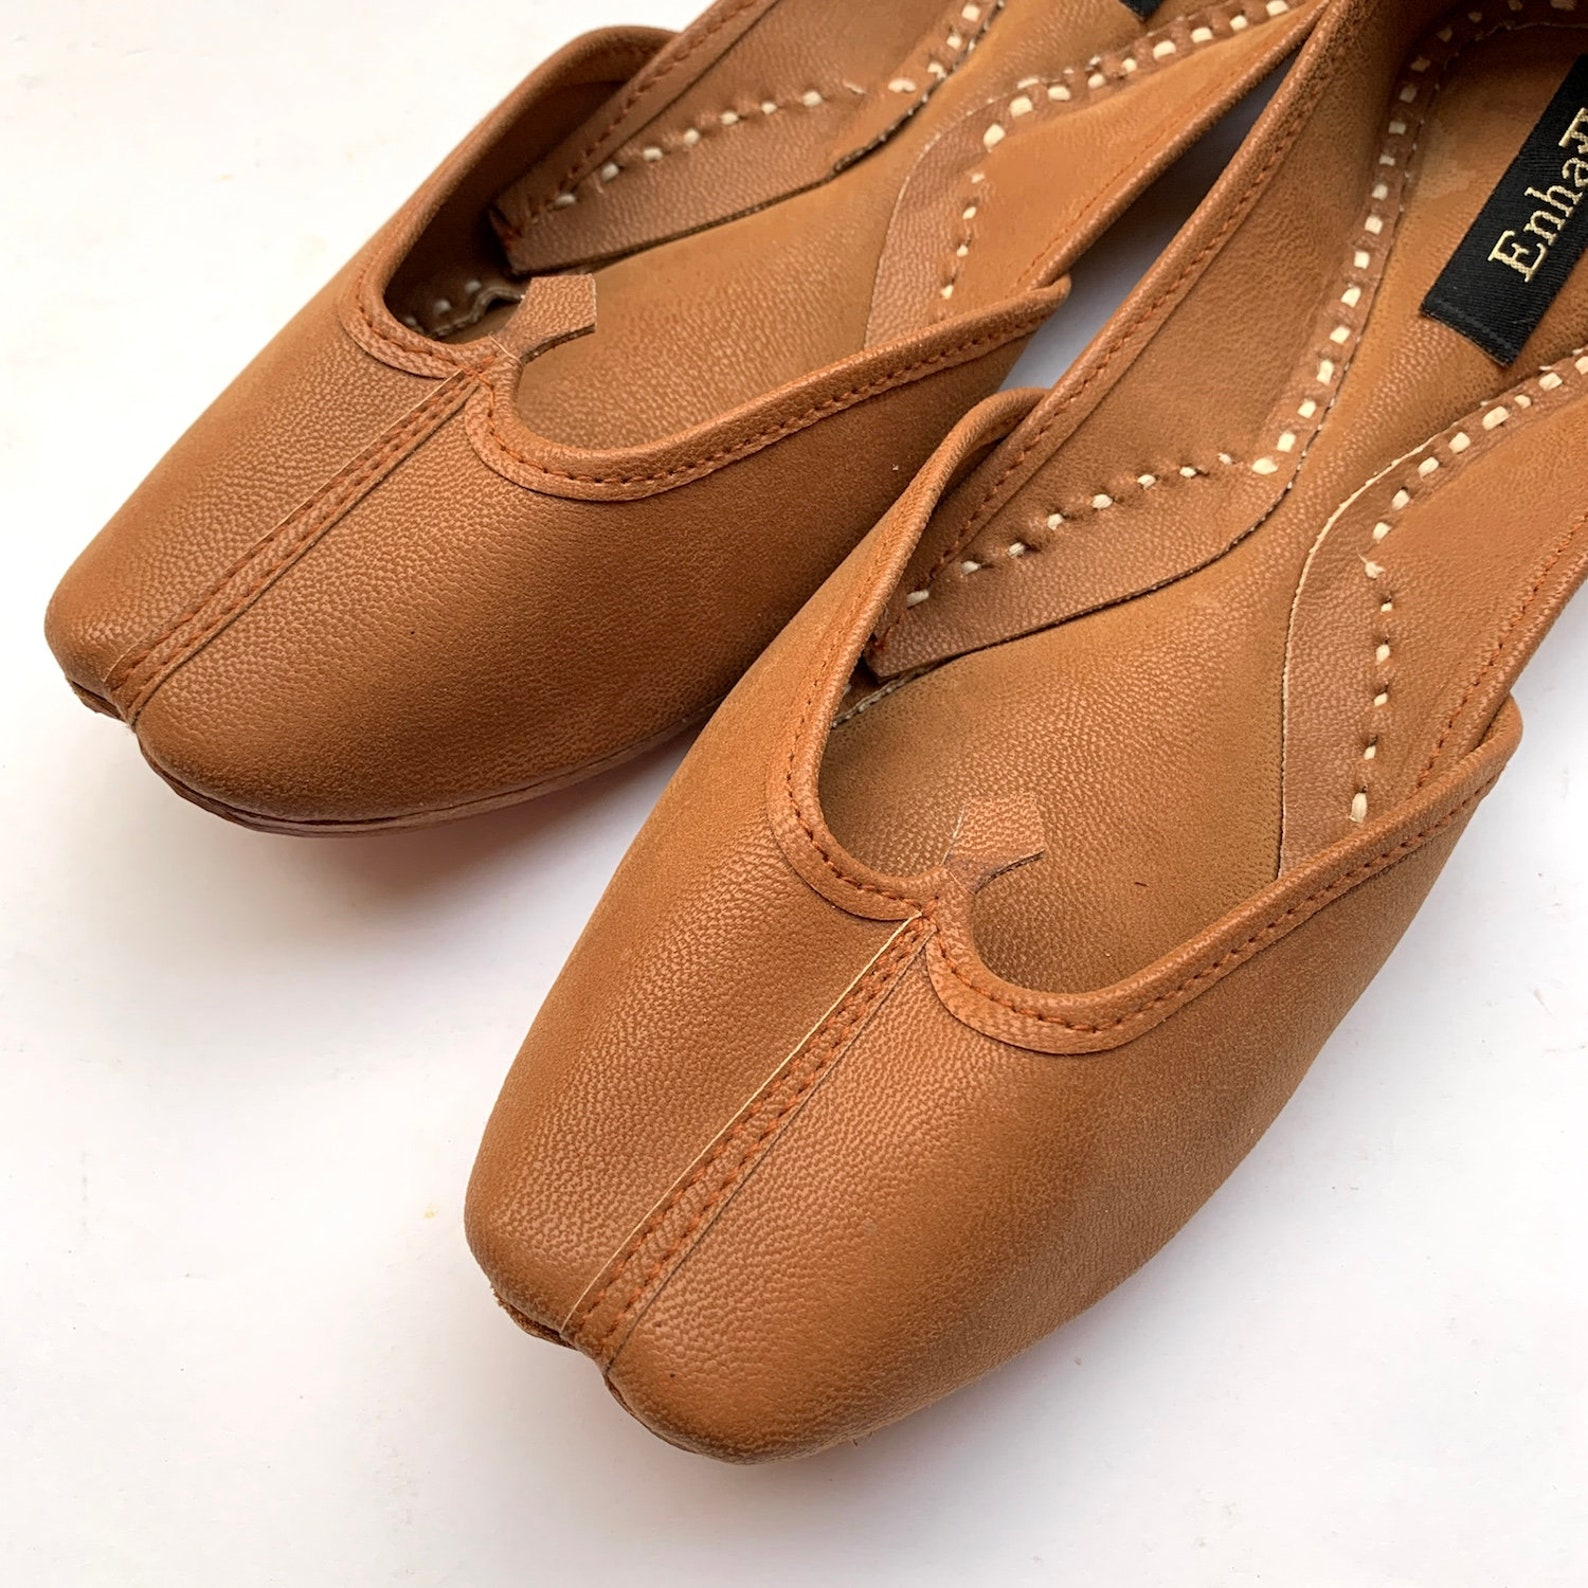 womens tan ballet flat shoes, slip on shoes, indian shoes, handmade designer shoes/juttis or mojaris